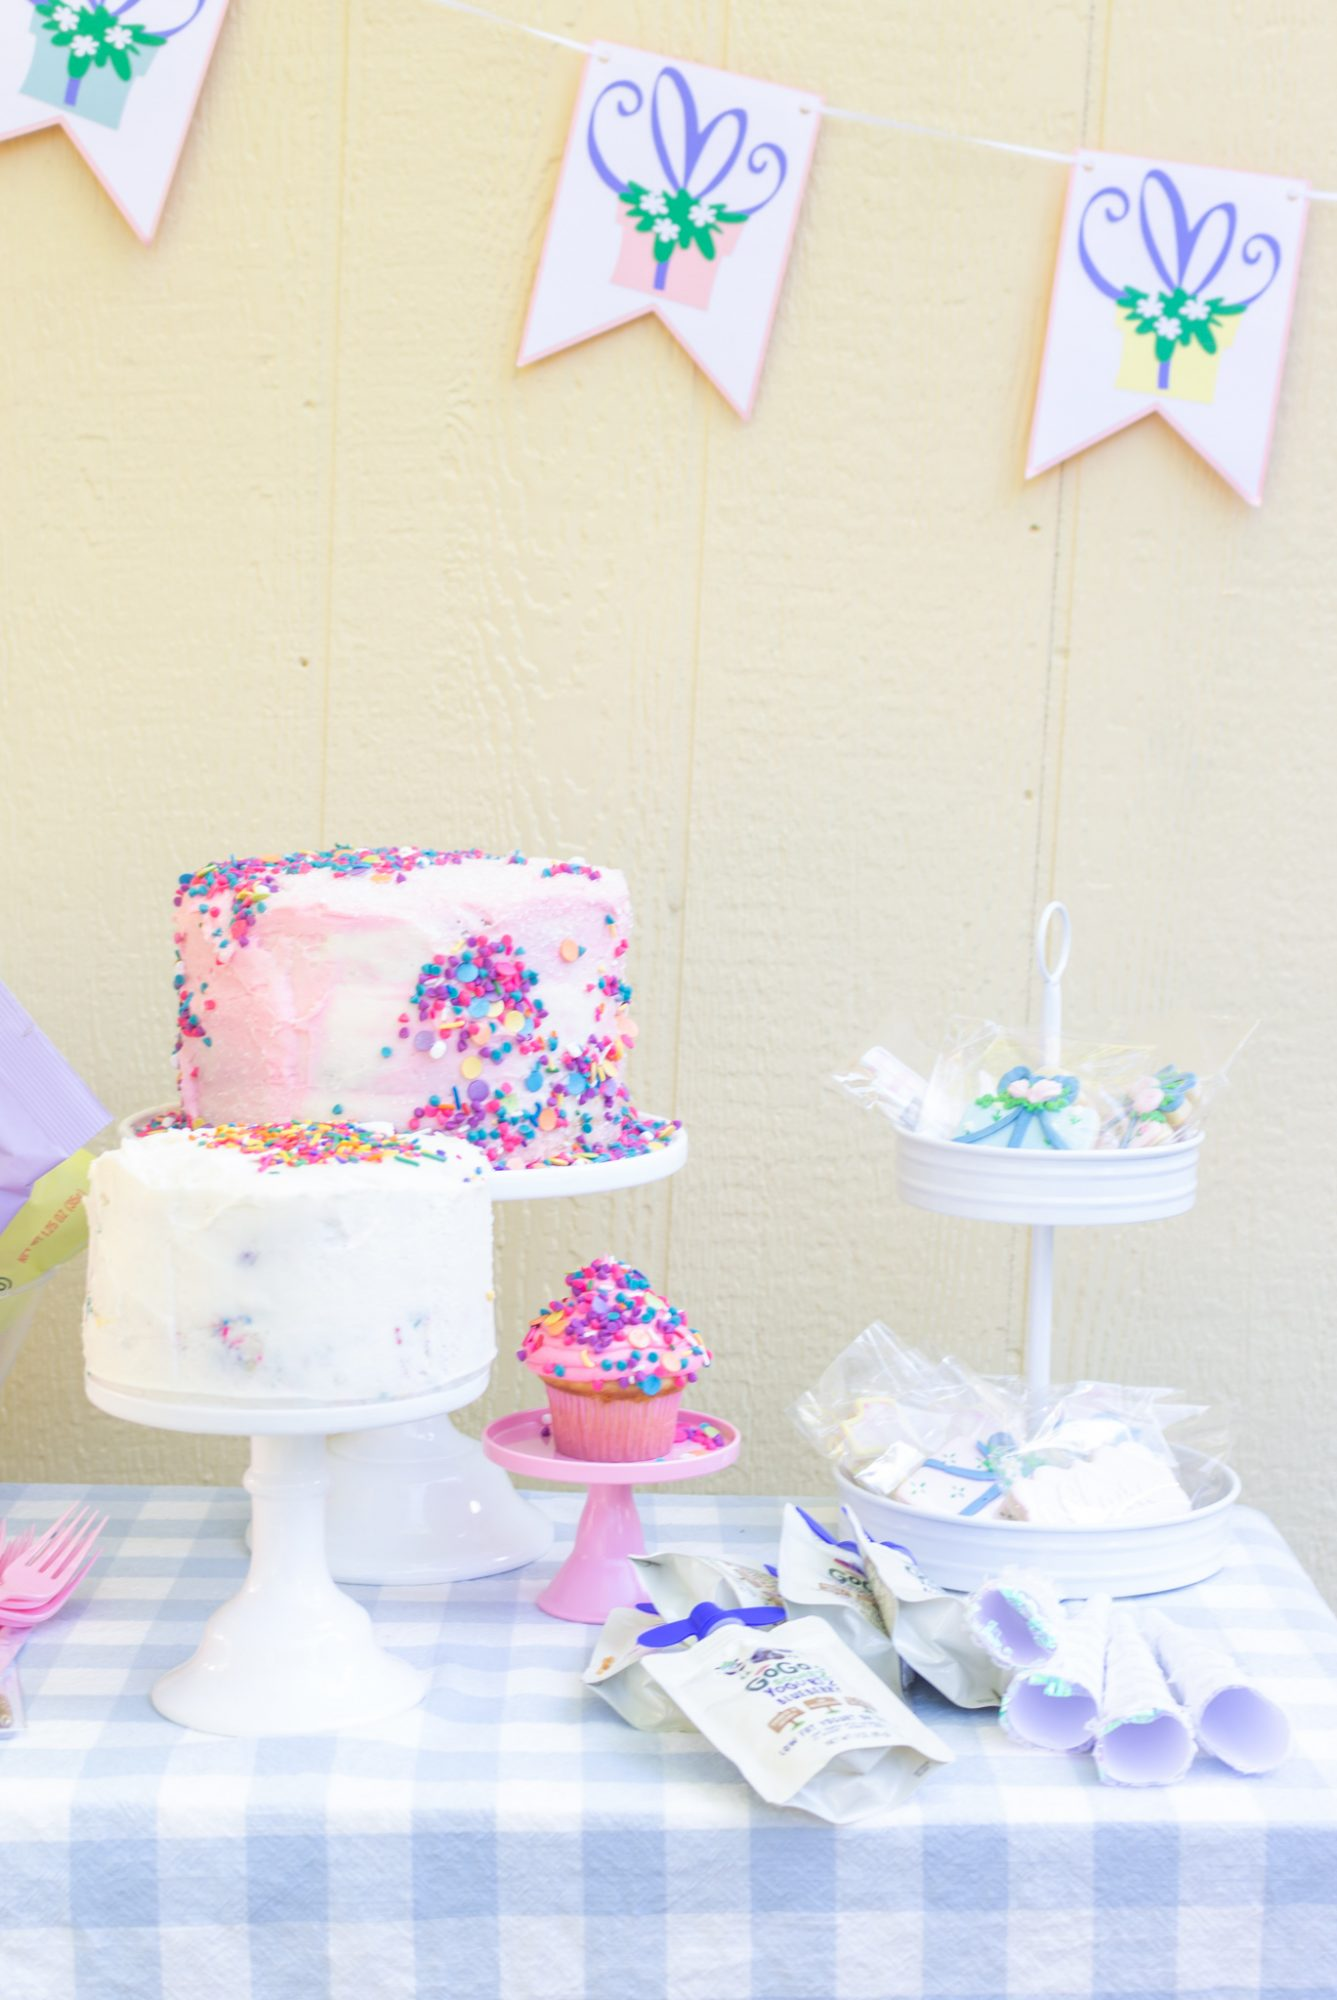 baked desserts for baby Claire's virtual birthday cake smash